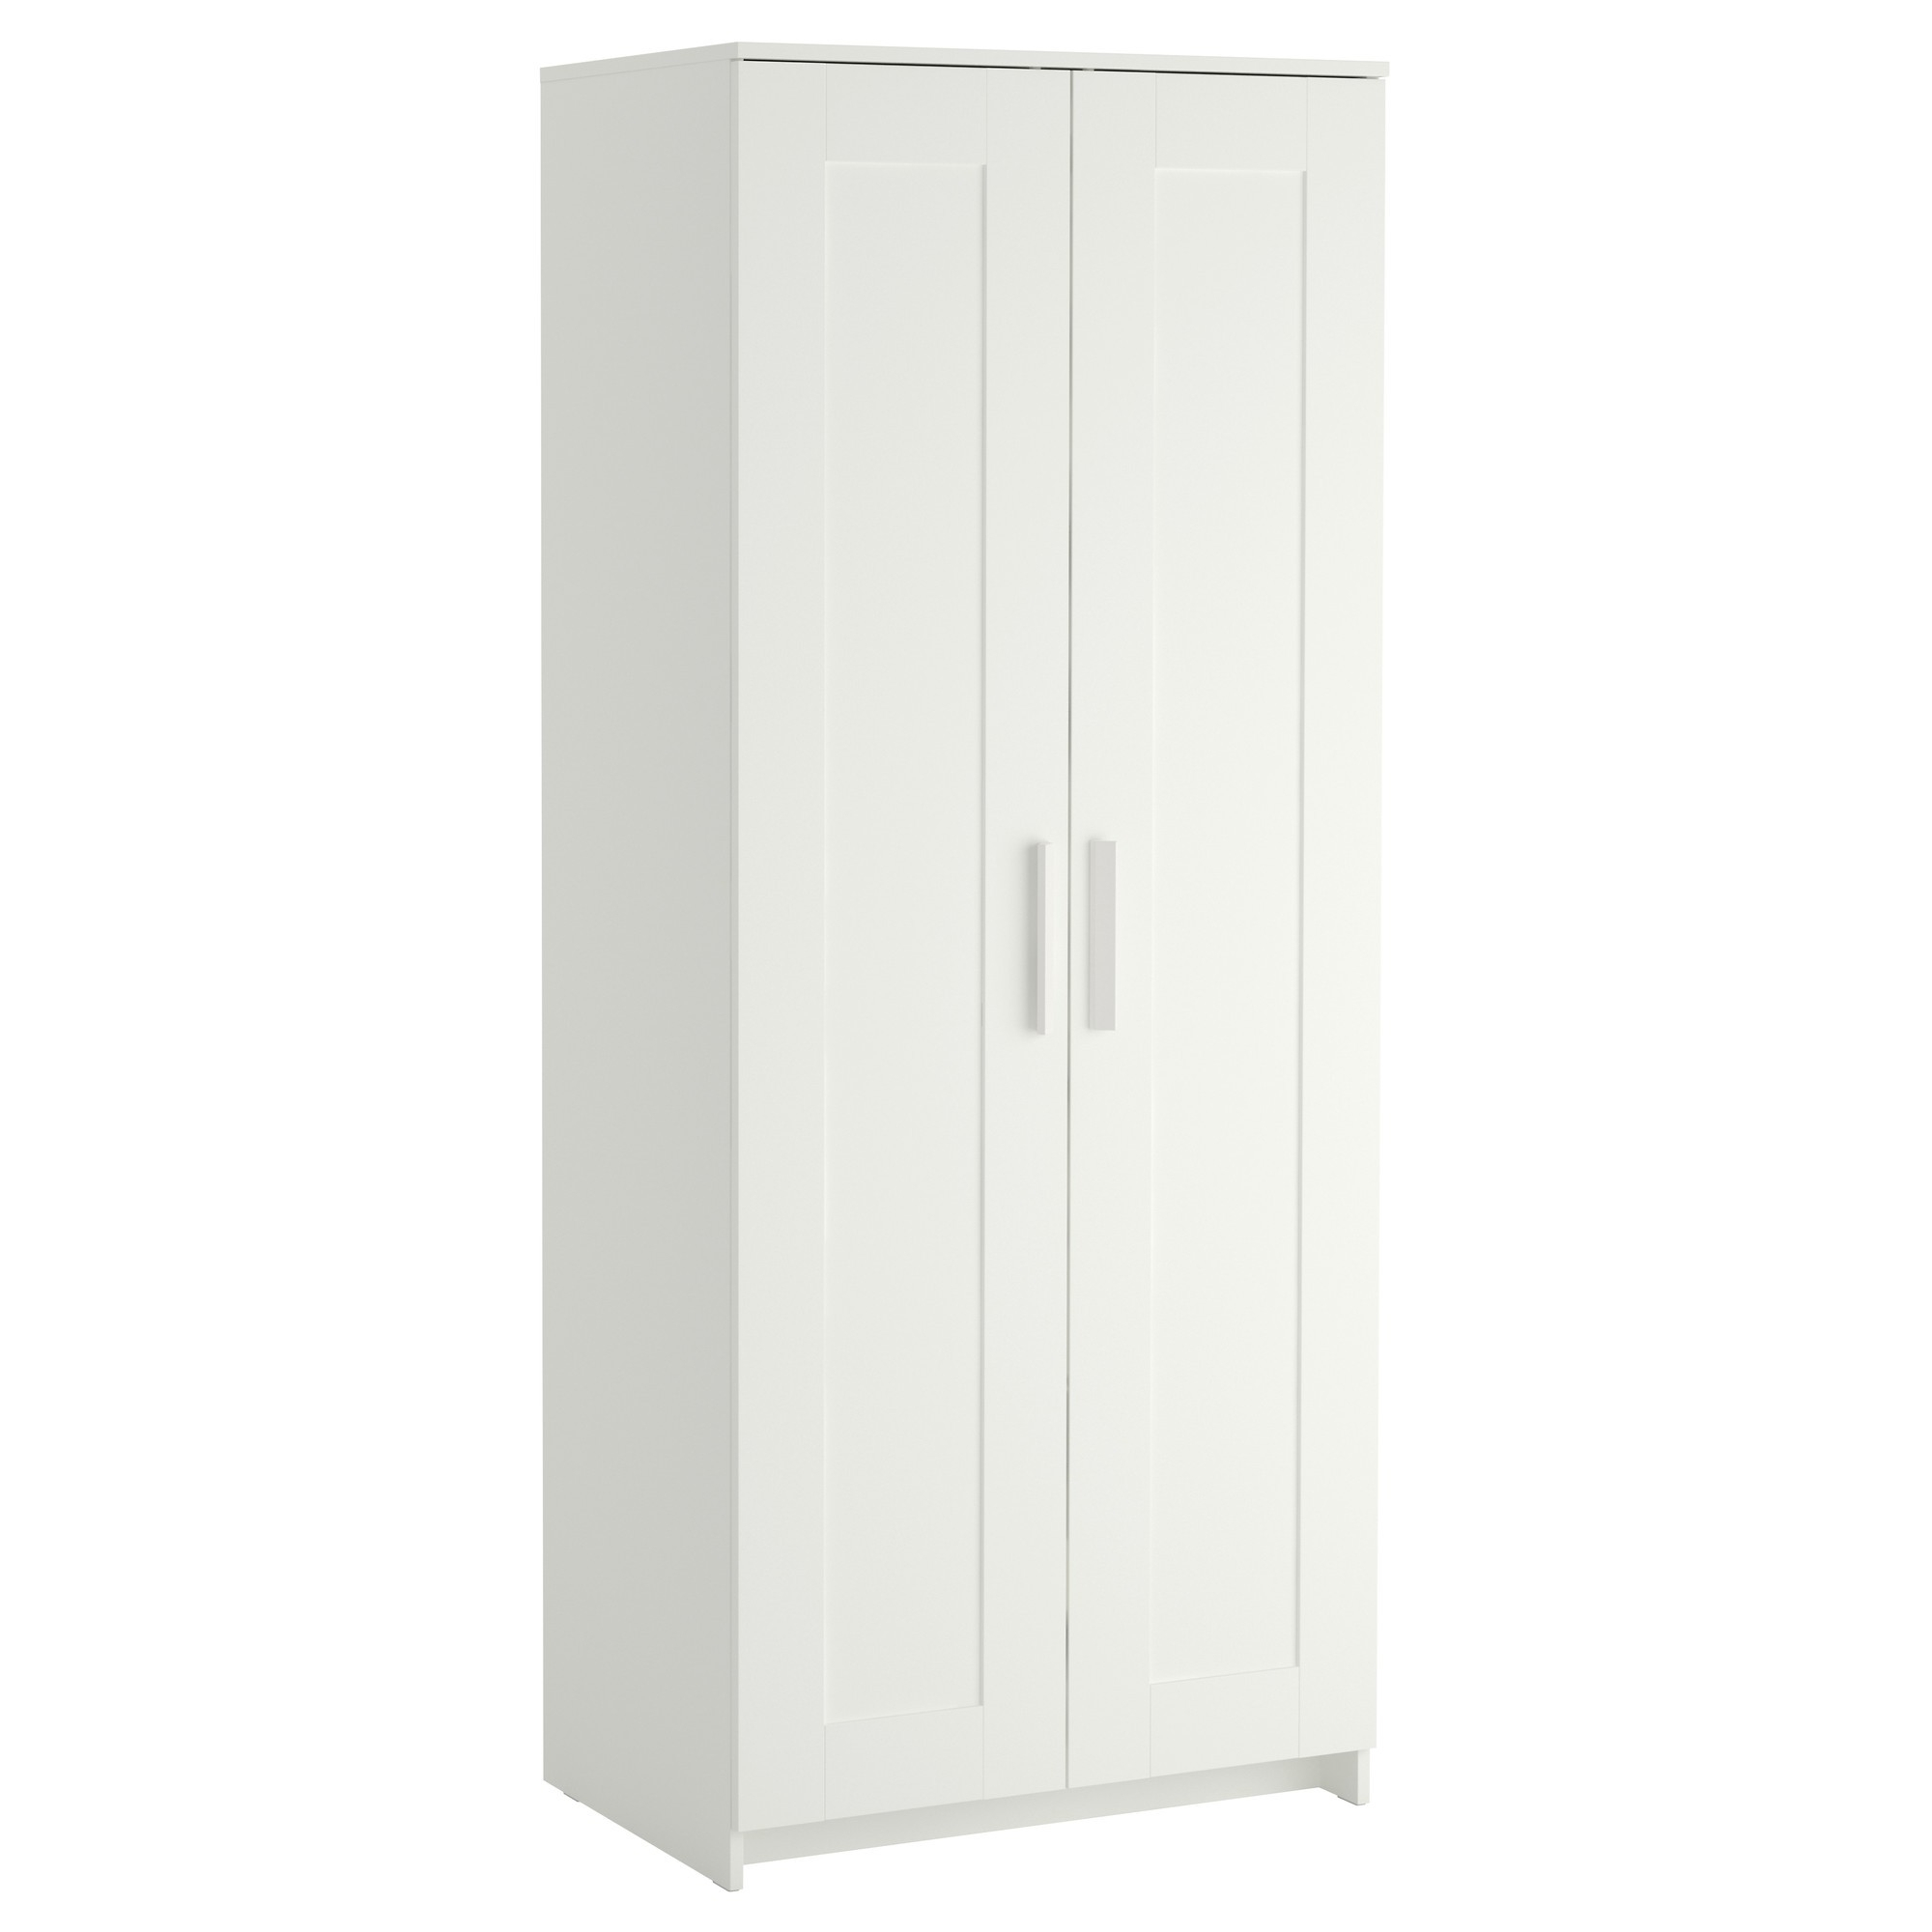 Luxury White Free Standing Wardrobes – Badotcom Regarding Most Recently Released Cameo 2 Door Wardrobes (View 11 of 15)